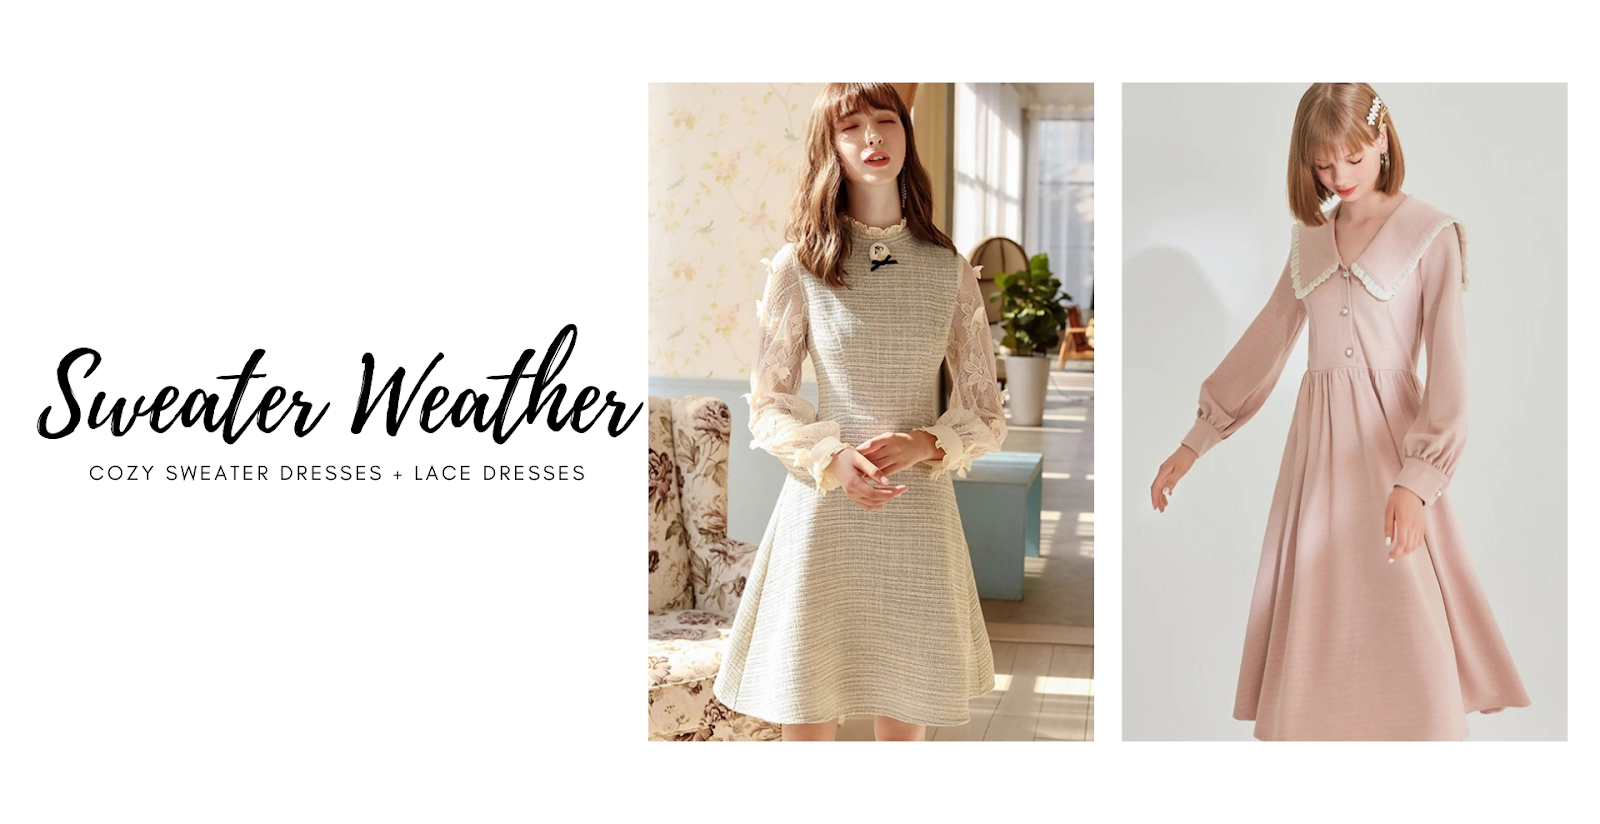 SWEATER WEATHER | COZY SWEATER DRESSES + LACE DRESSES